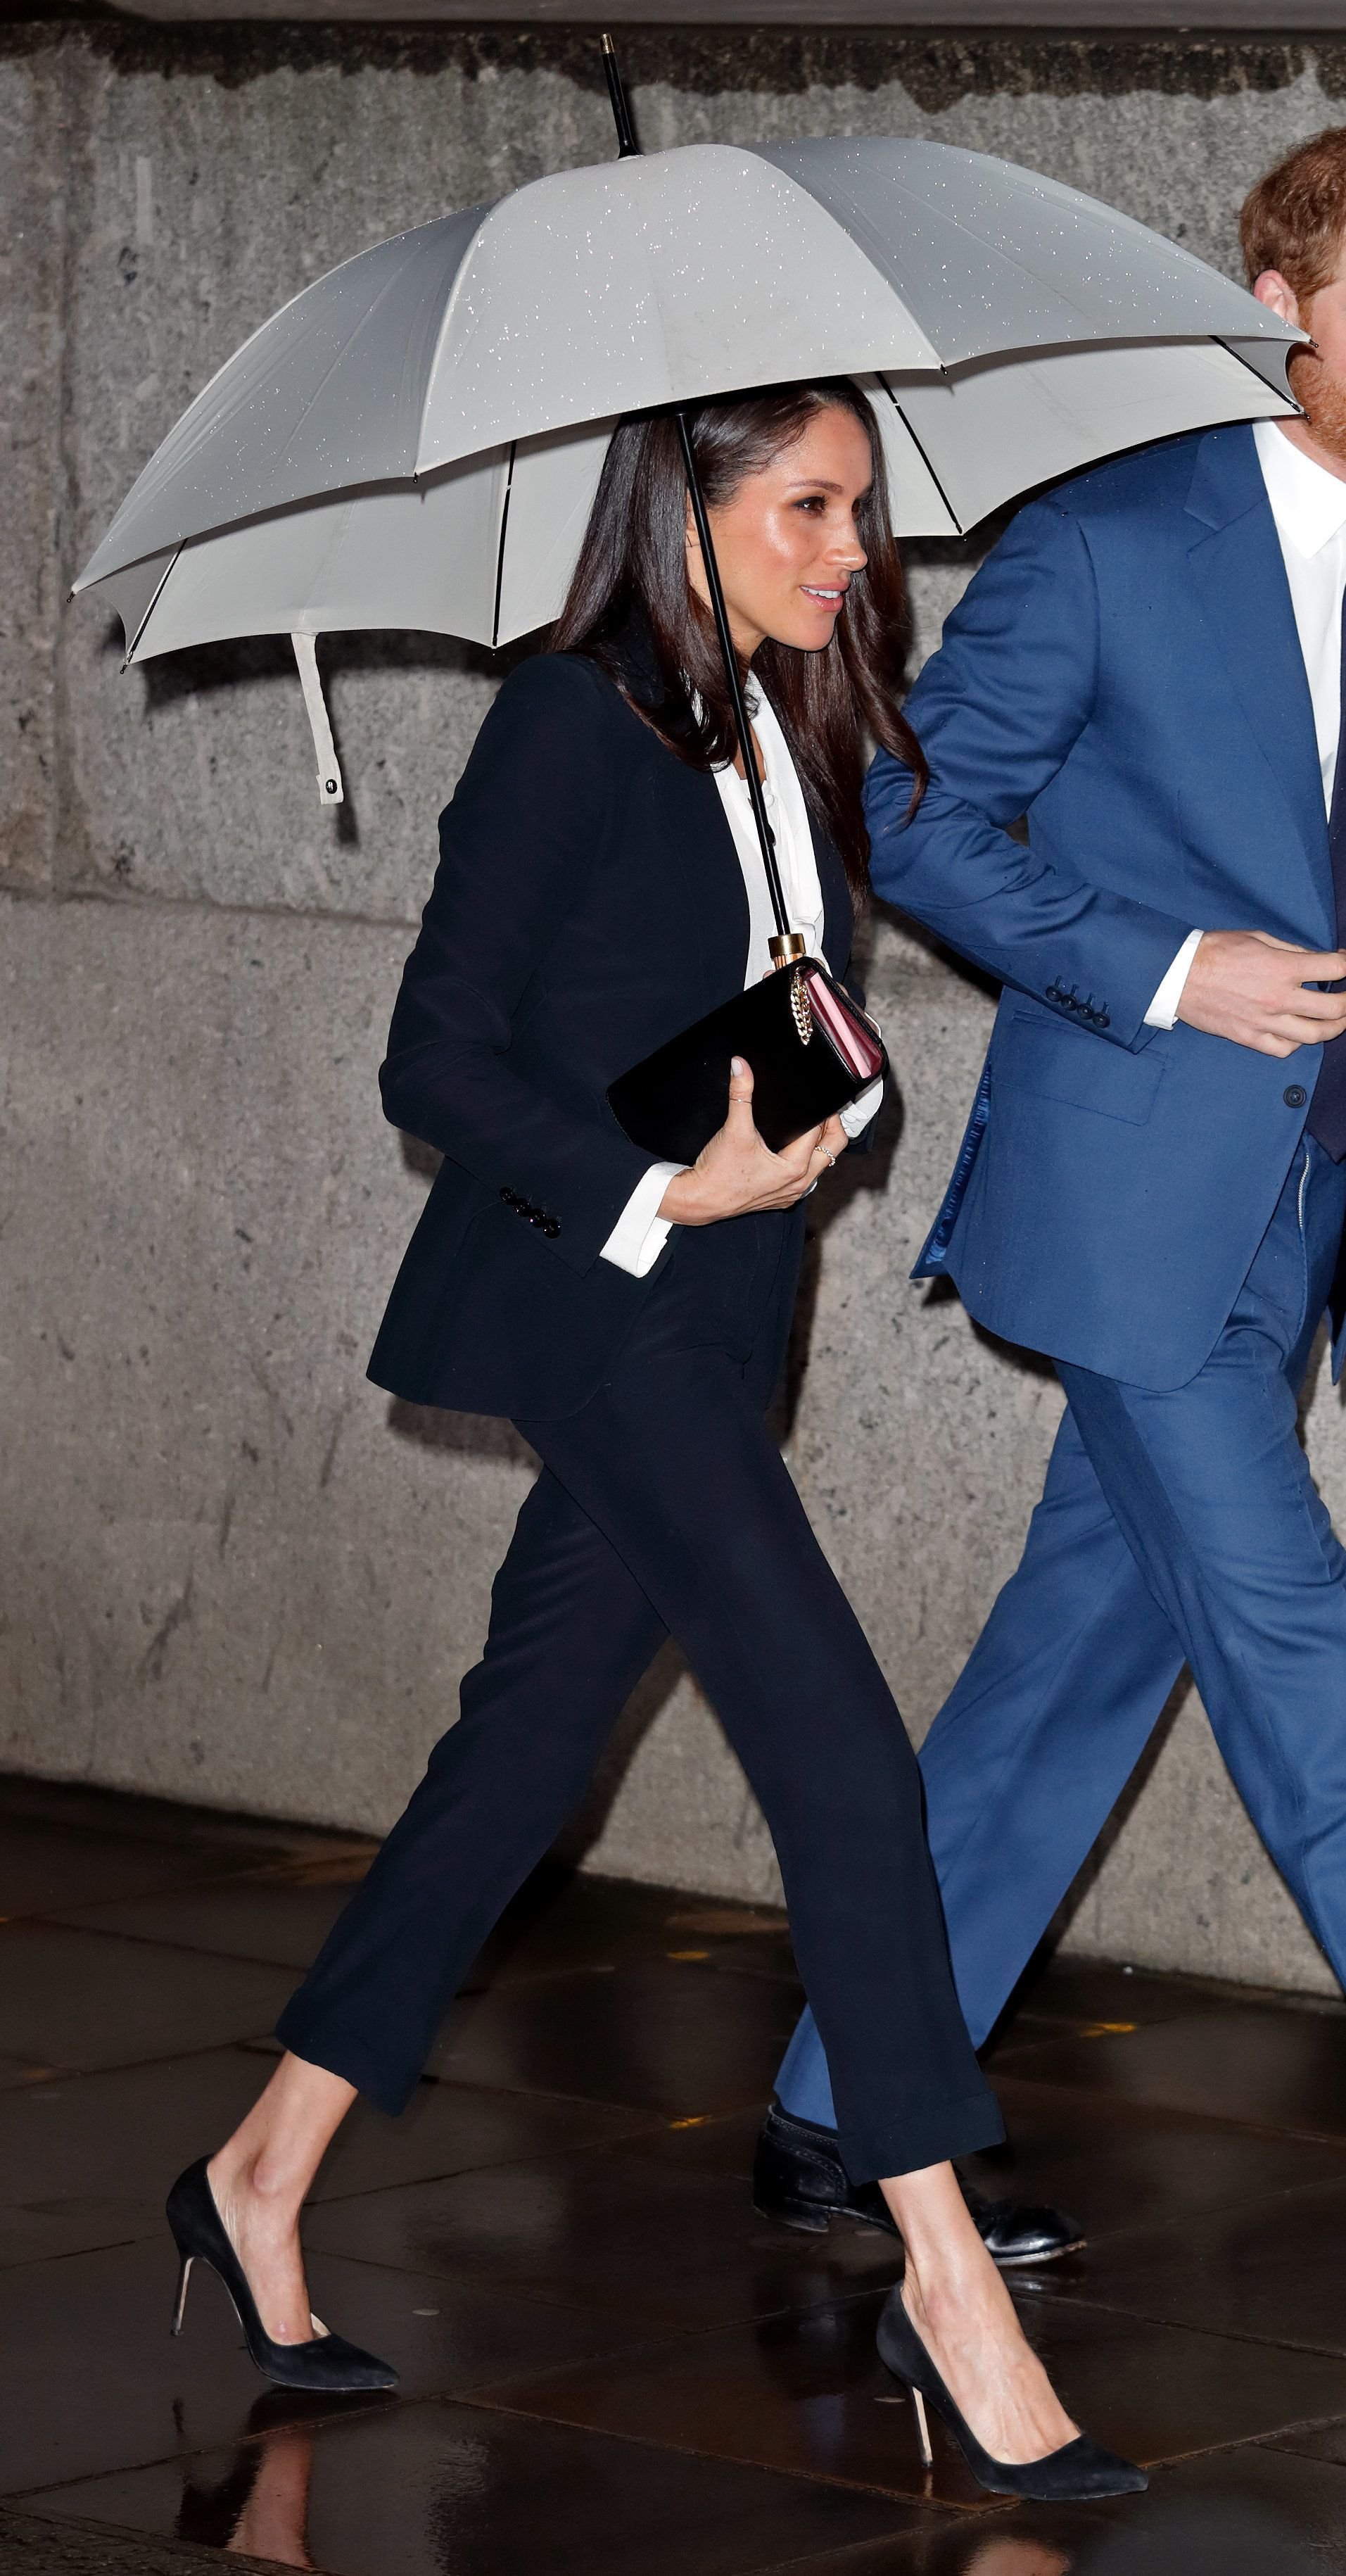 Meghan Markle Wears Navy Trouser Suit, Teaching Us All A Lesson In Power